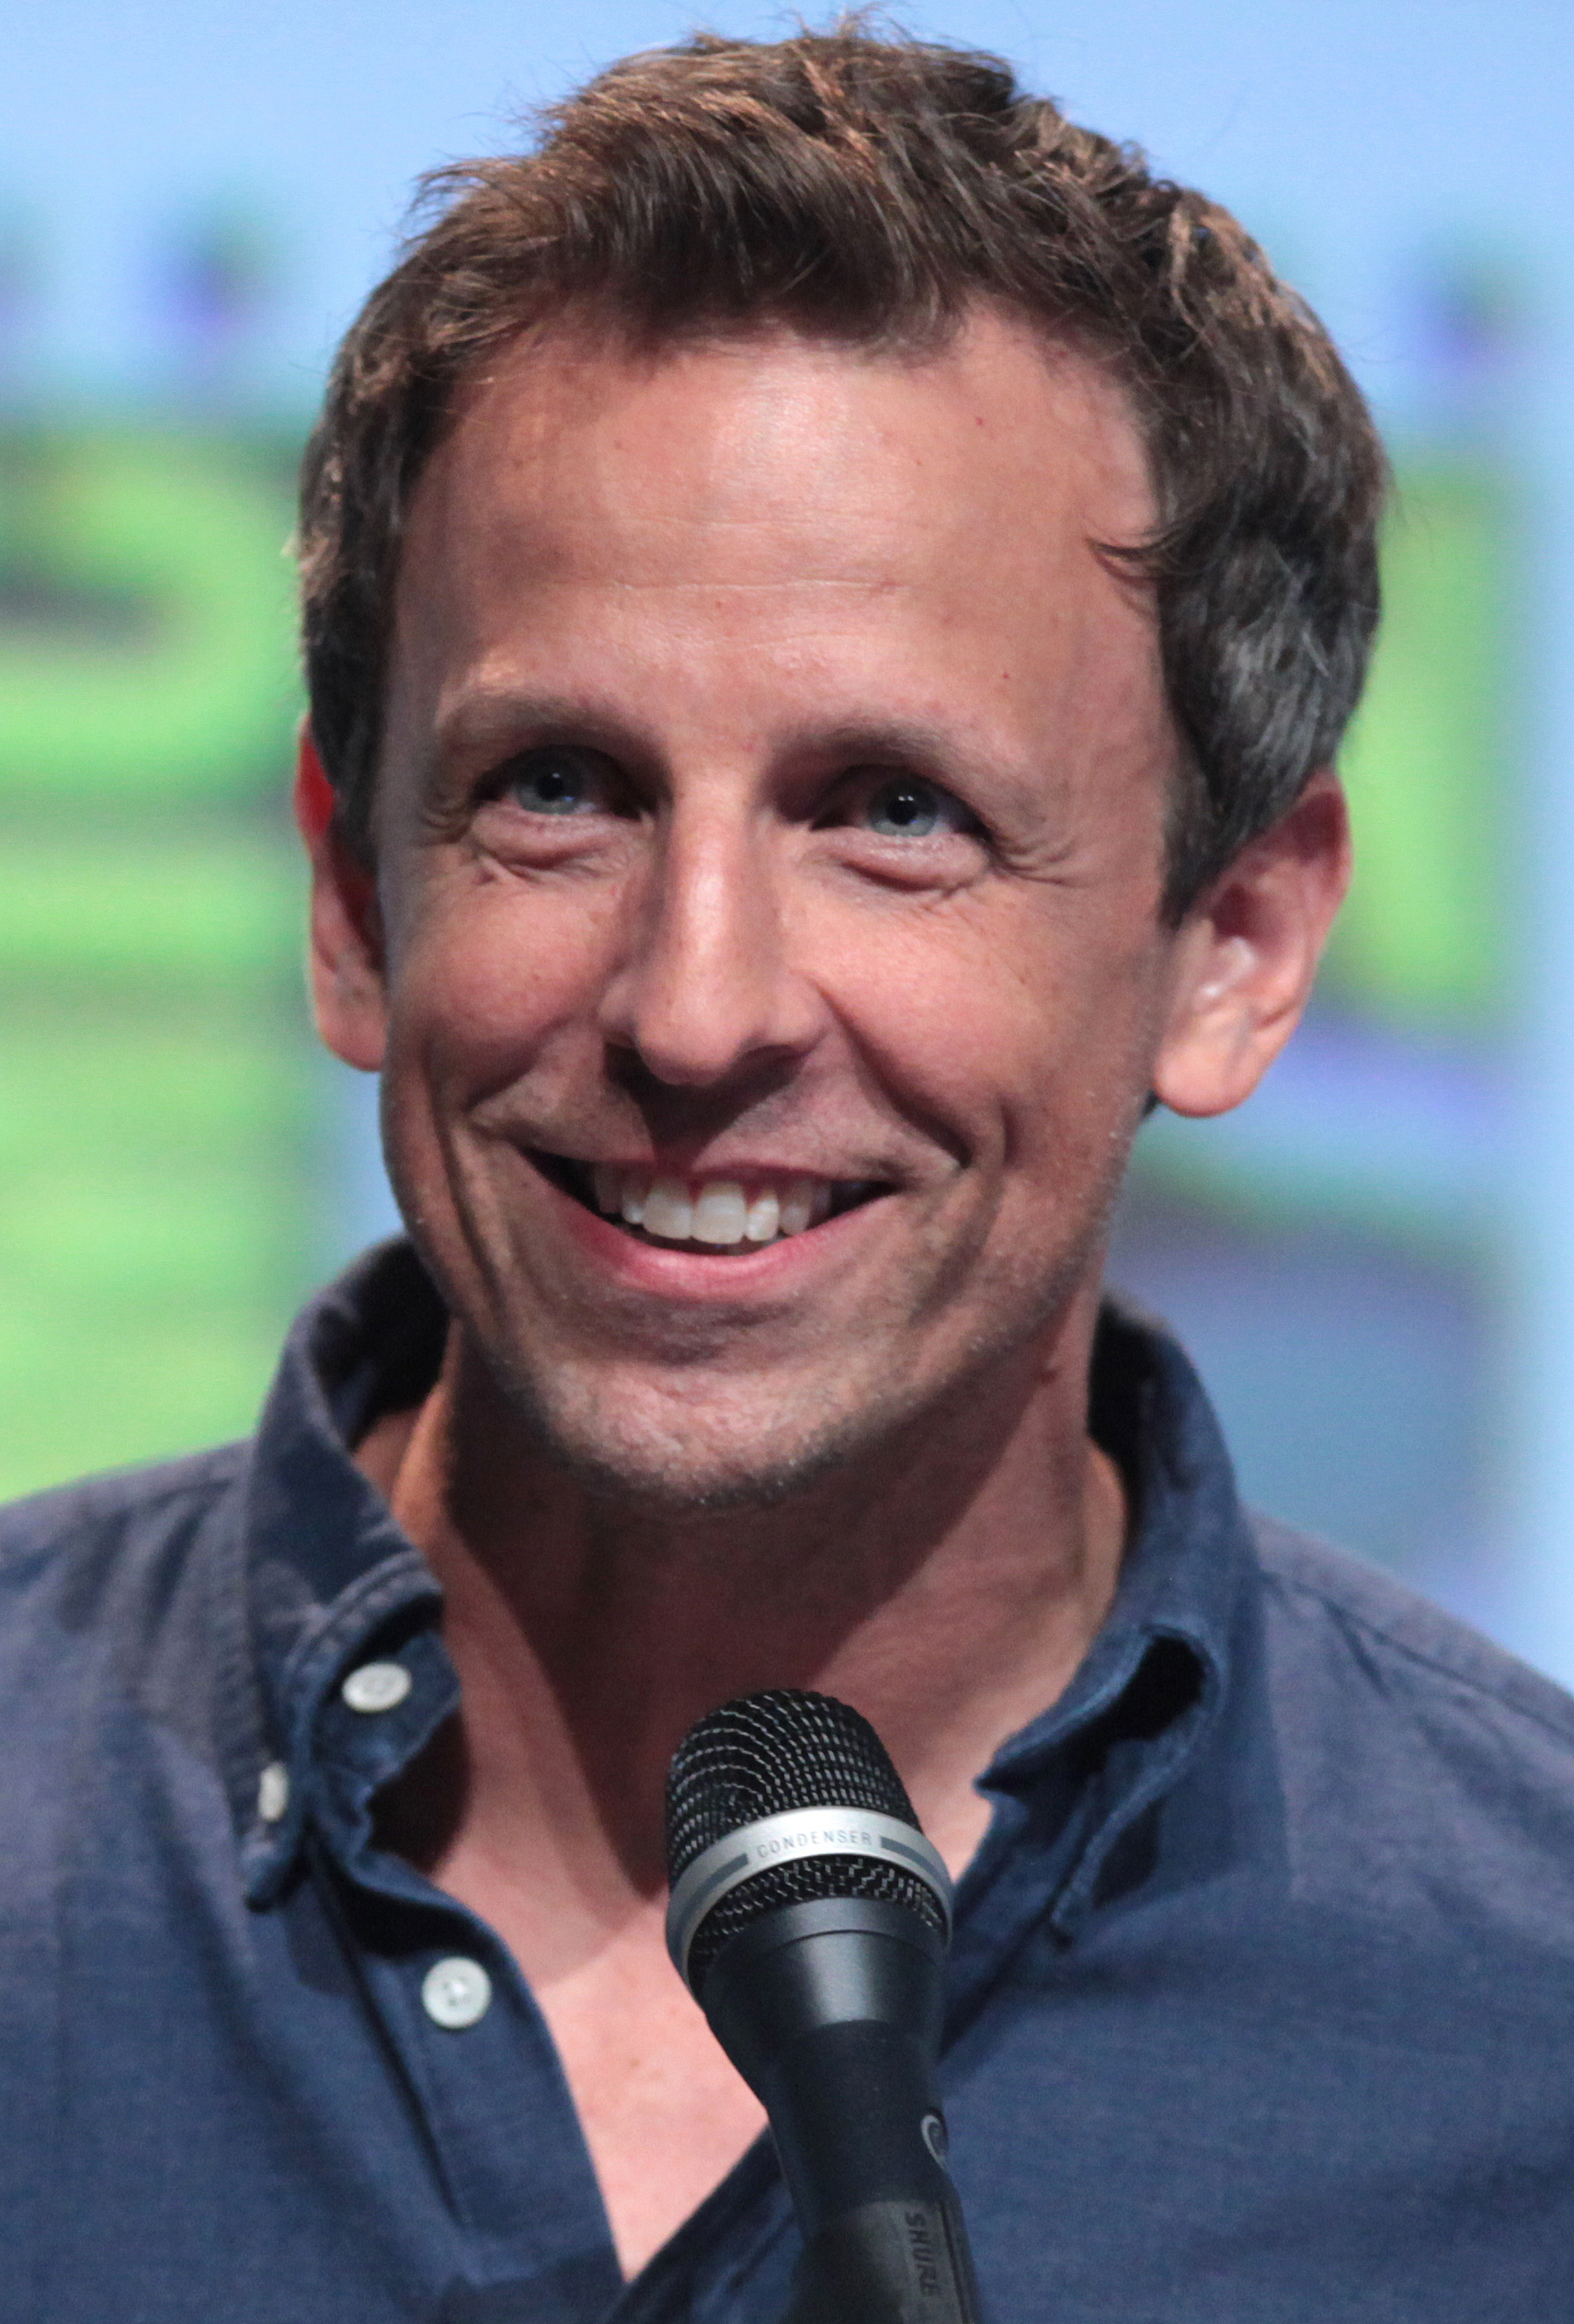 The 44-year old son of father Larry Meyers and mother Hilary Claire Olson Meyers Seth Meyers in 2018 photo. Seth Meyers earned a  million dollar salary - leaving the net worth at 10 million in 2018